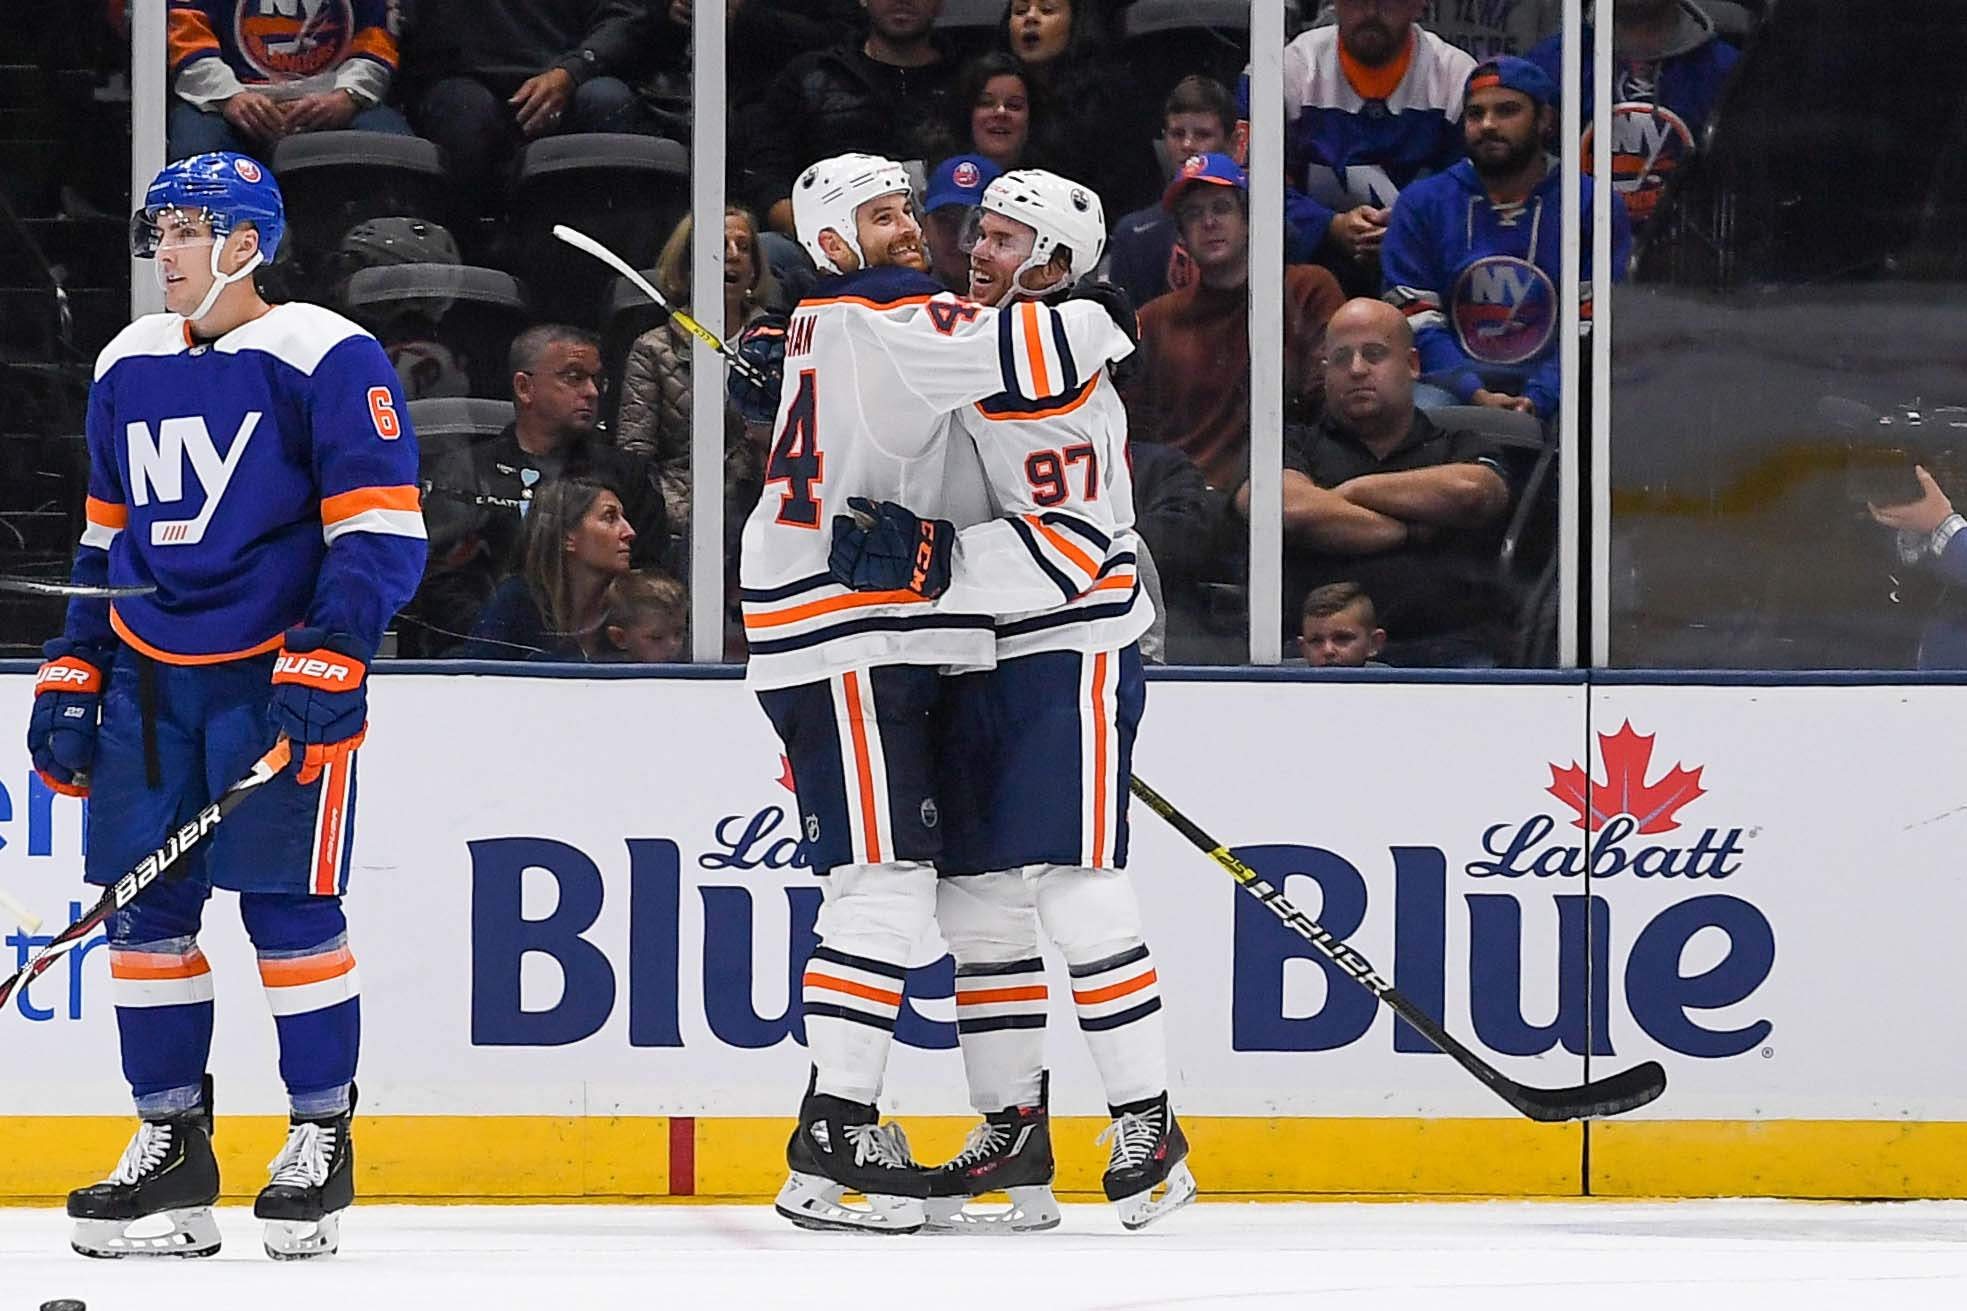 Oct 8, 2019; Uniondale, NY, USA; Edmonton Oilers right wing Zack Kassian (44) celebrates his goal with Edmonton Oilers center Connor McDavid (97) against the New York Islanders during the second period at Nassau Veterans Memorial Coliseum. Mandatory Credit: Dennis Schneidler-USA TODAY Sports